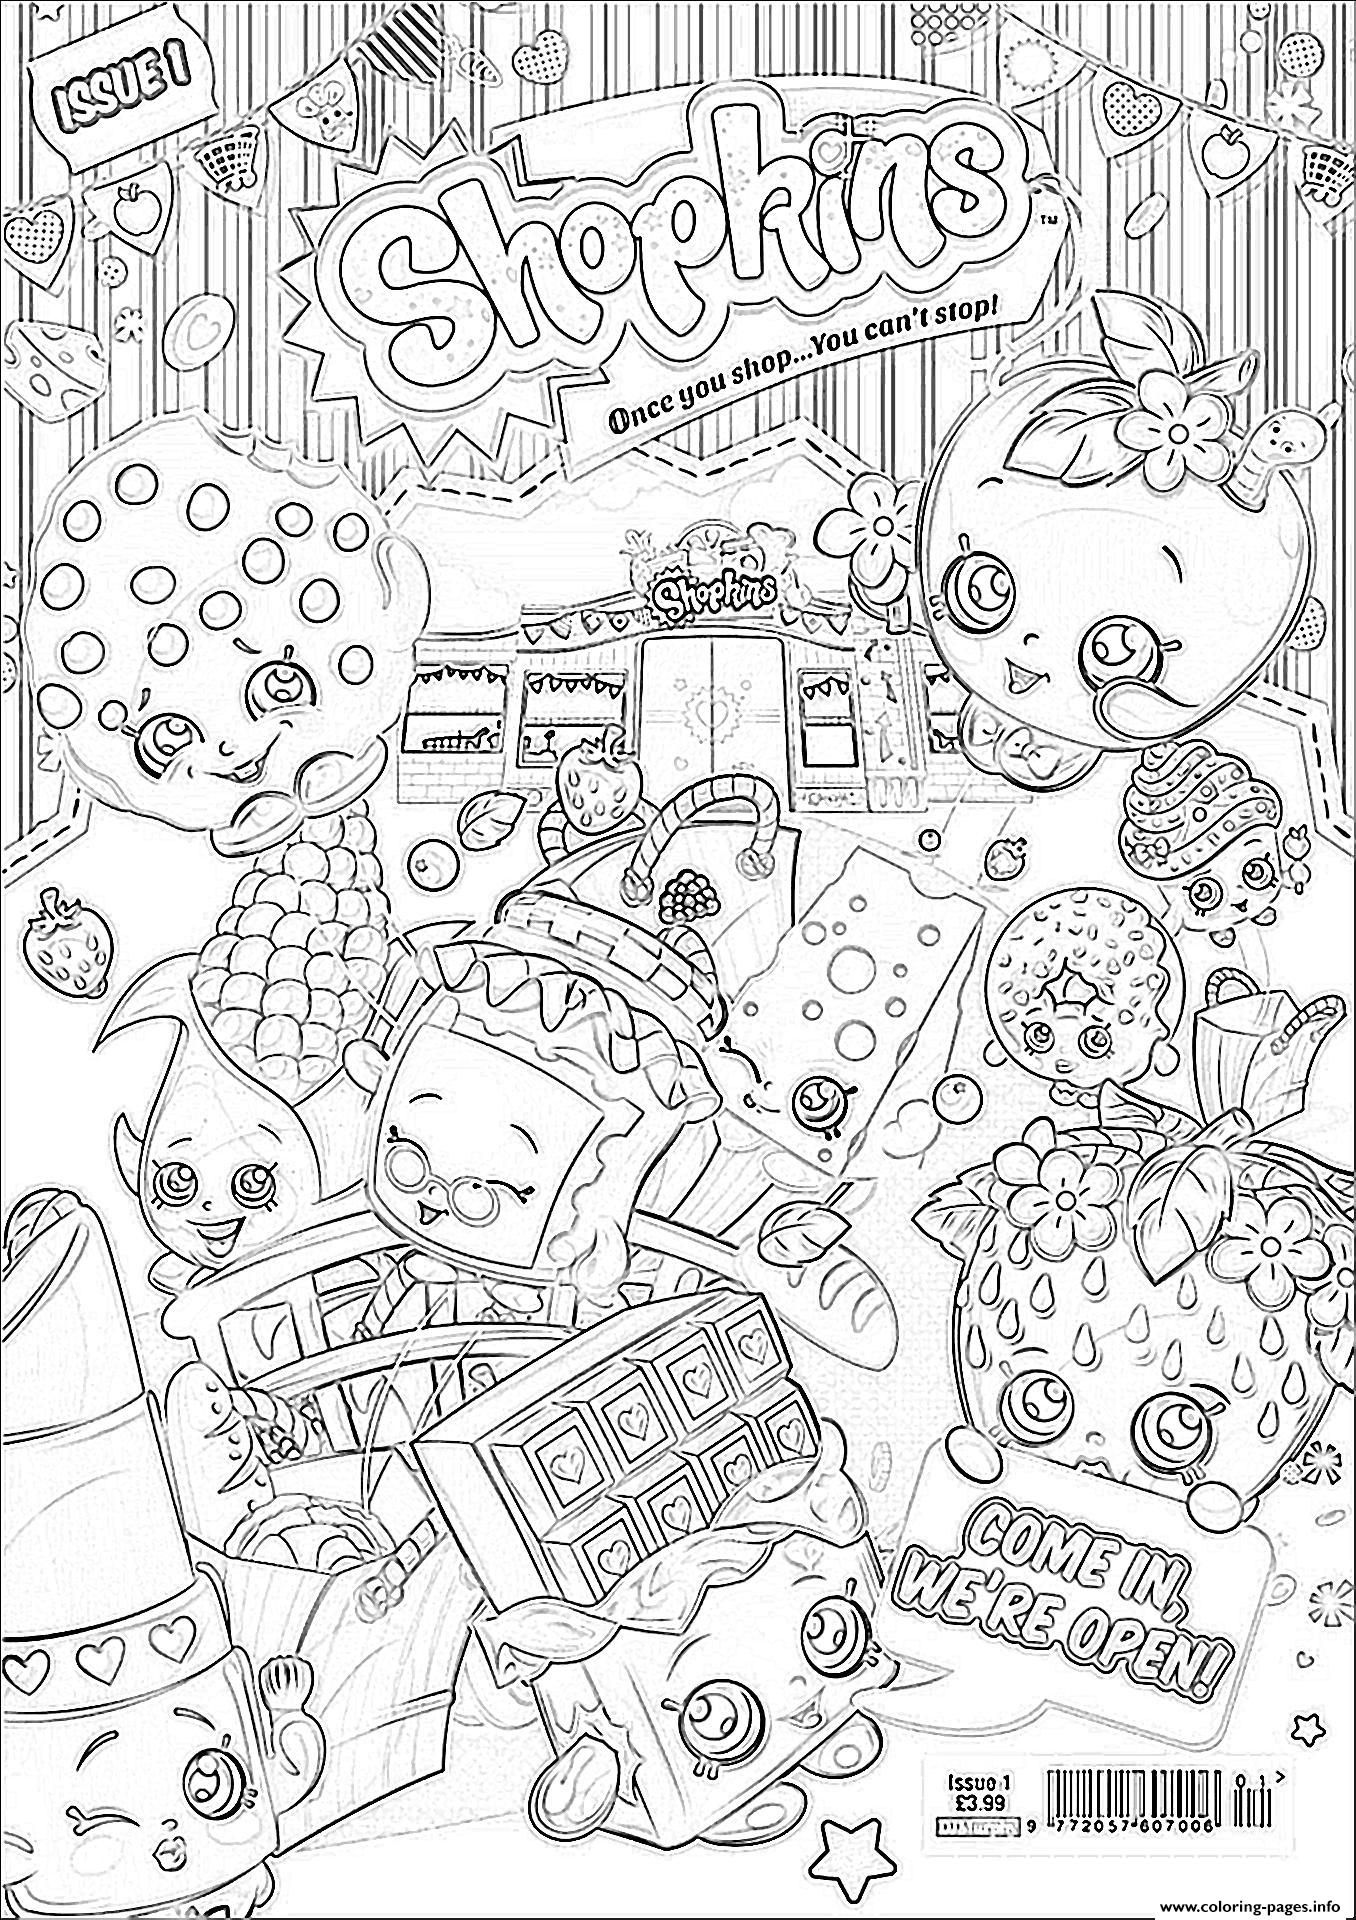 Print shopkins we are open coloring